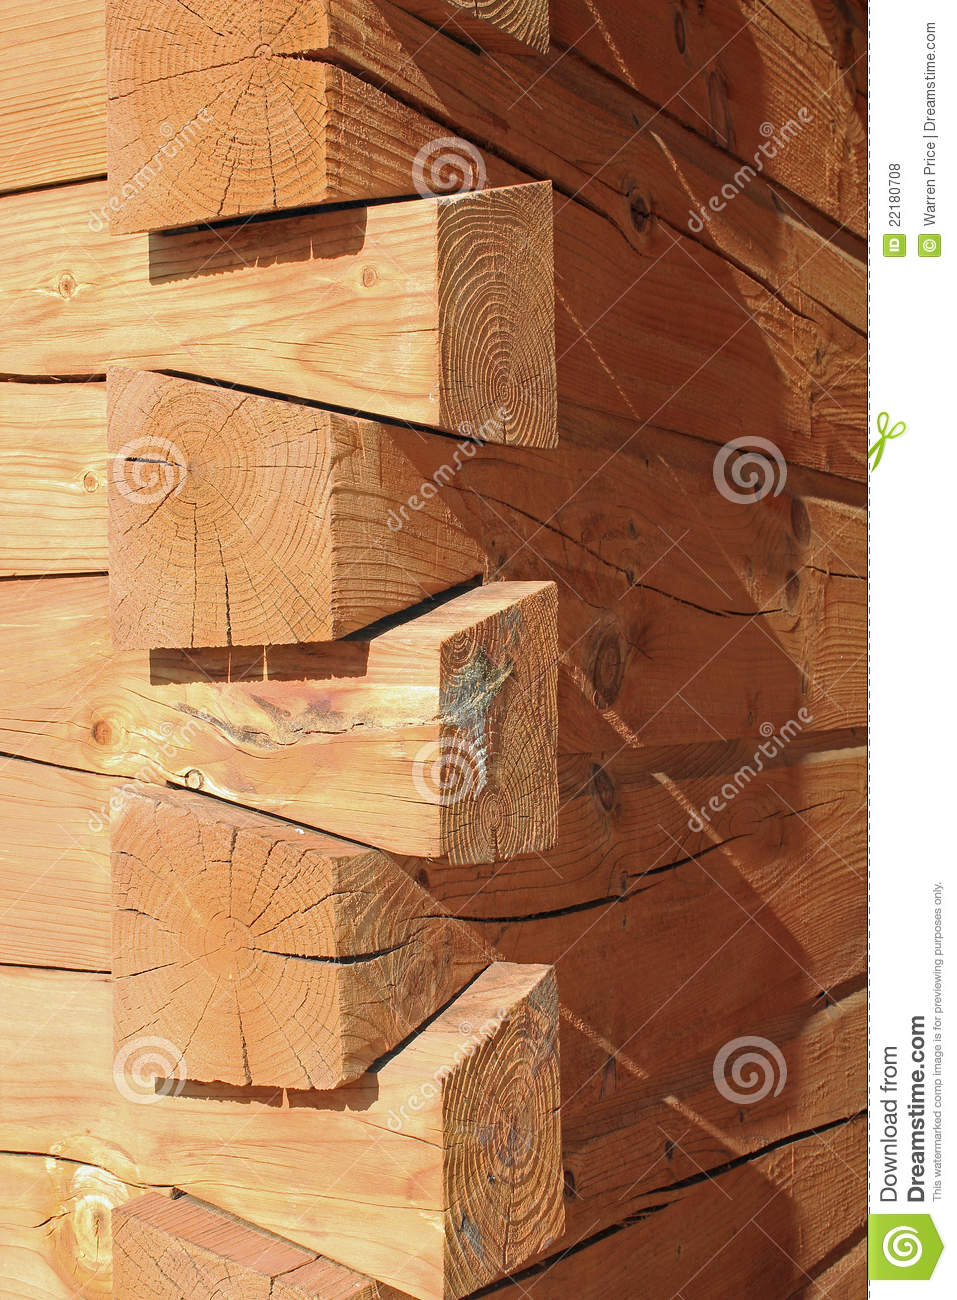 Log Cabin Construction Joints Stock Photo Image Of House